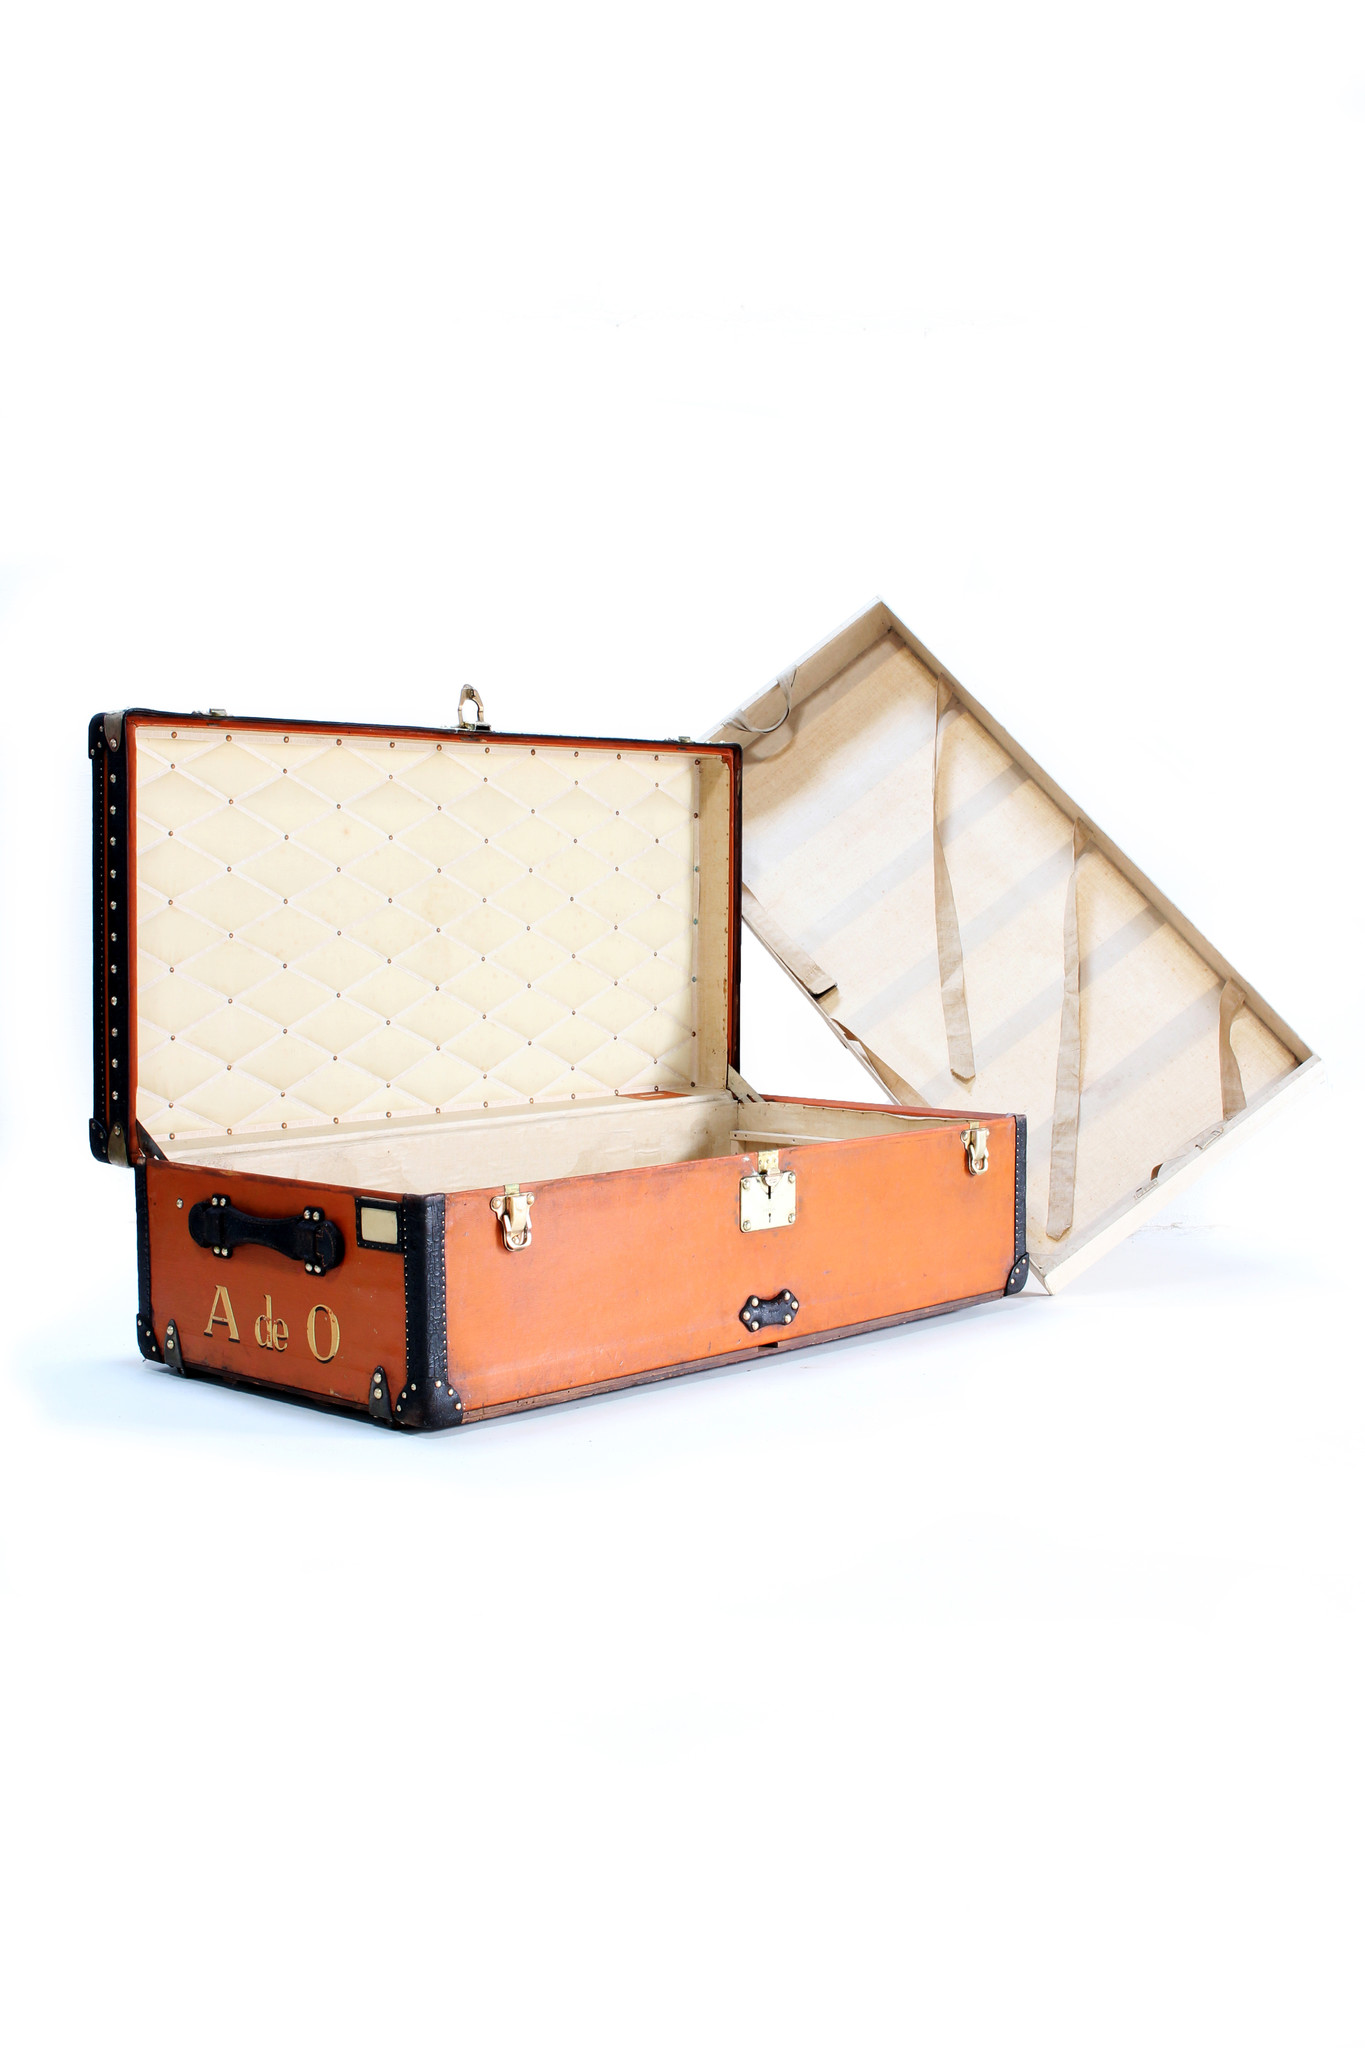 Louis Vuitton trunk malle cabine I Lovely orange